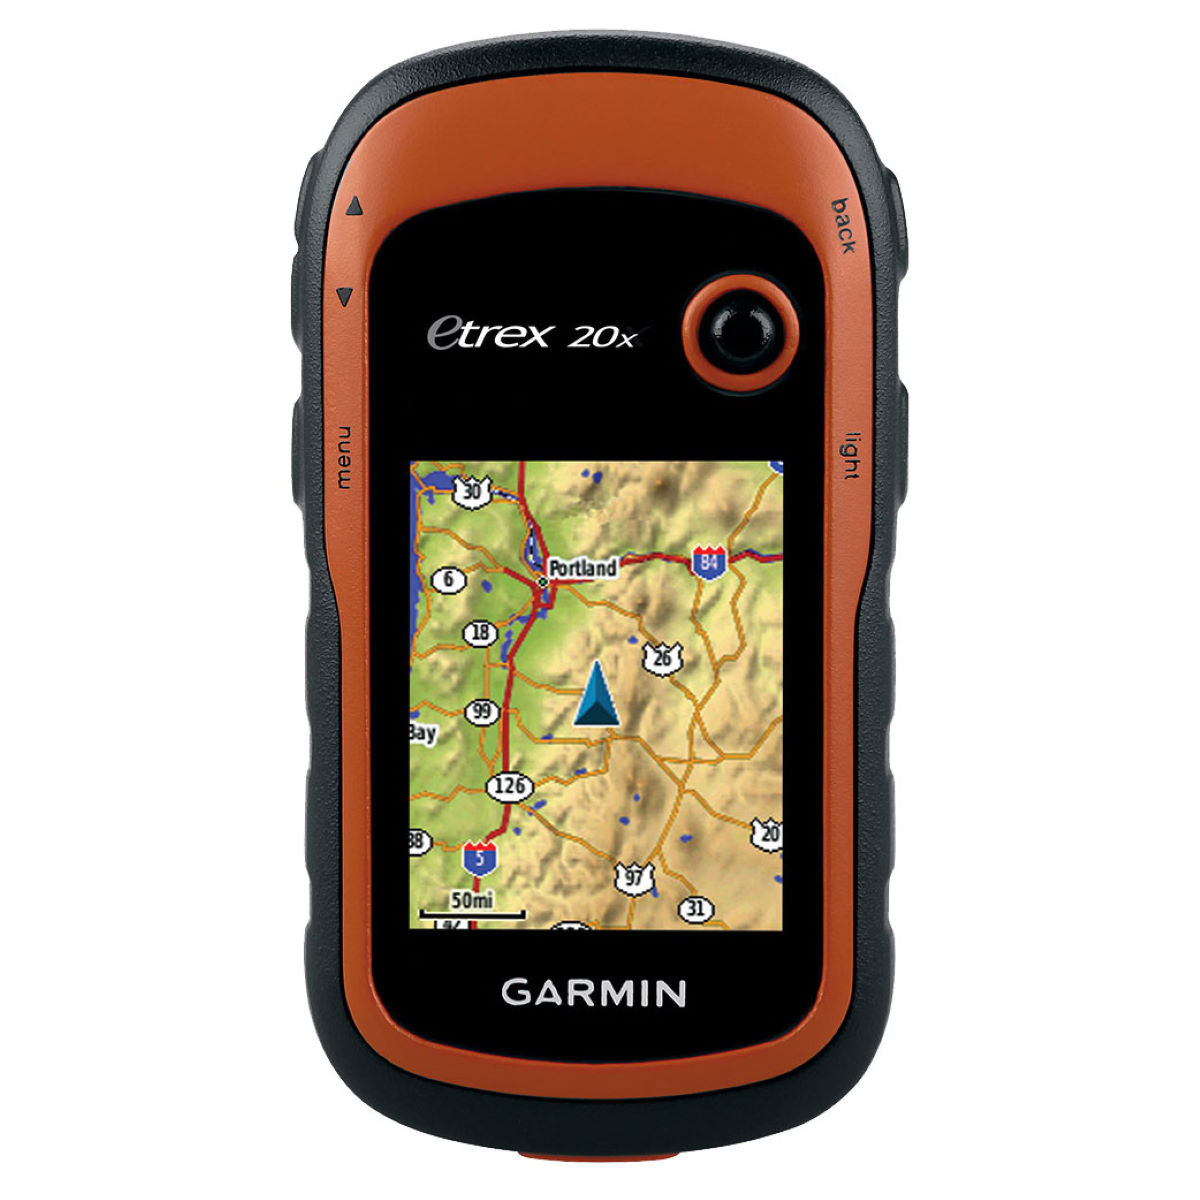 Garmin eTrex 20x GPS with Western Europe Maps Outdoor GPS Units